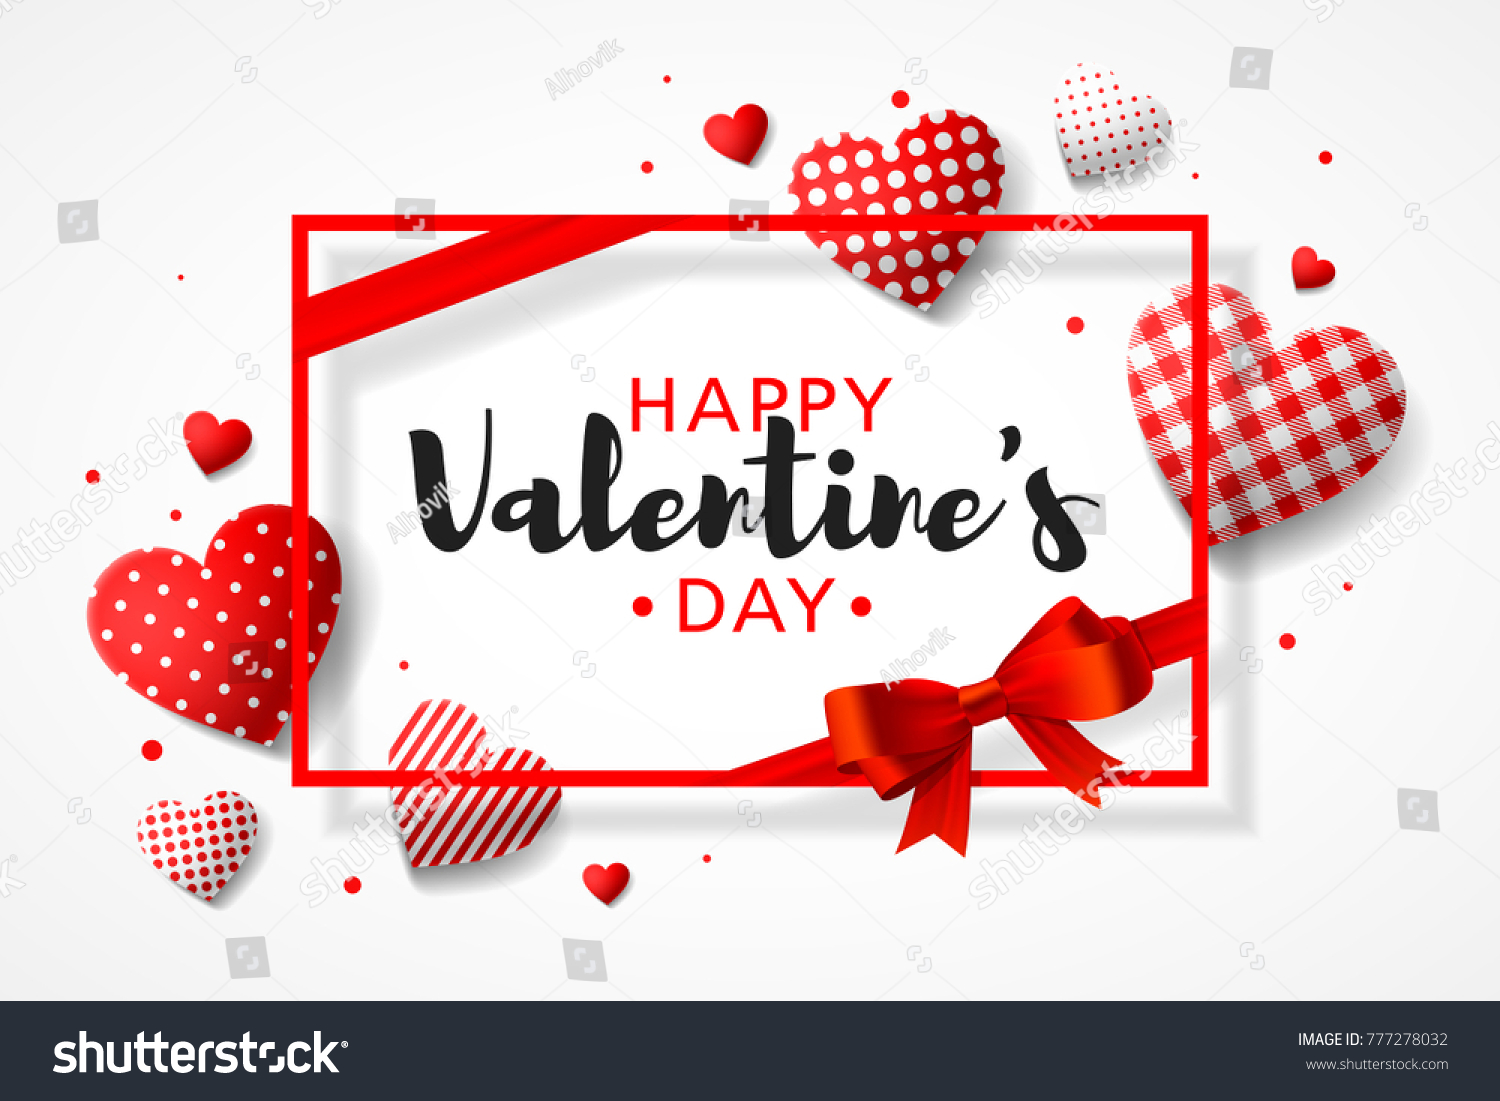 Happy valentines day greeting card design stock vector 777278032 happy valentines day greeting card design with frame gift bow and different patterns hearts kristyandbryce Image collections